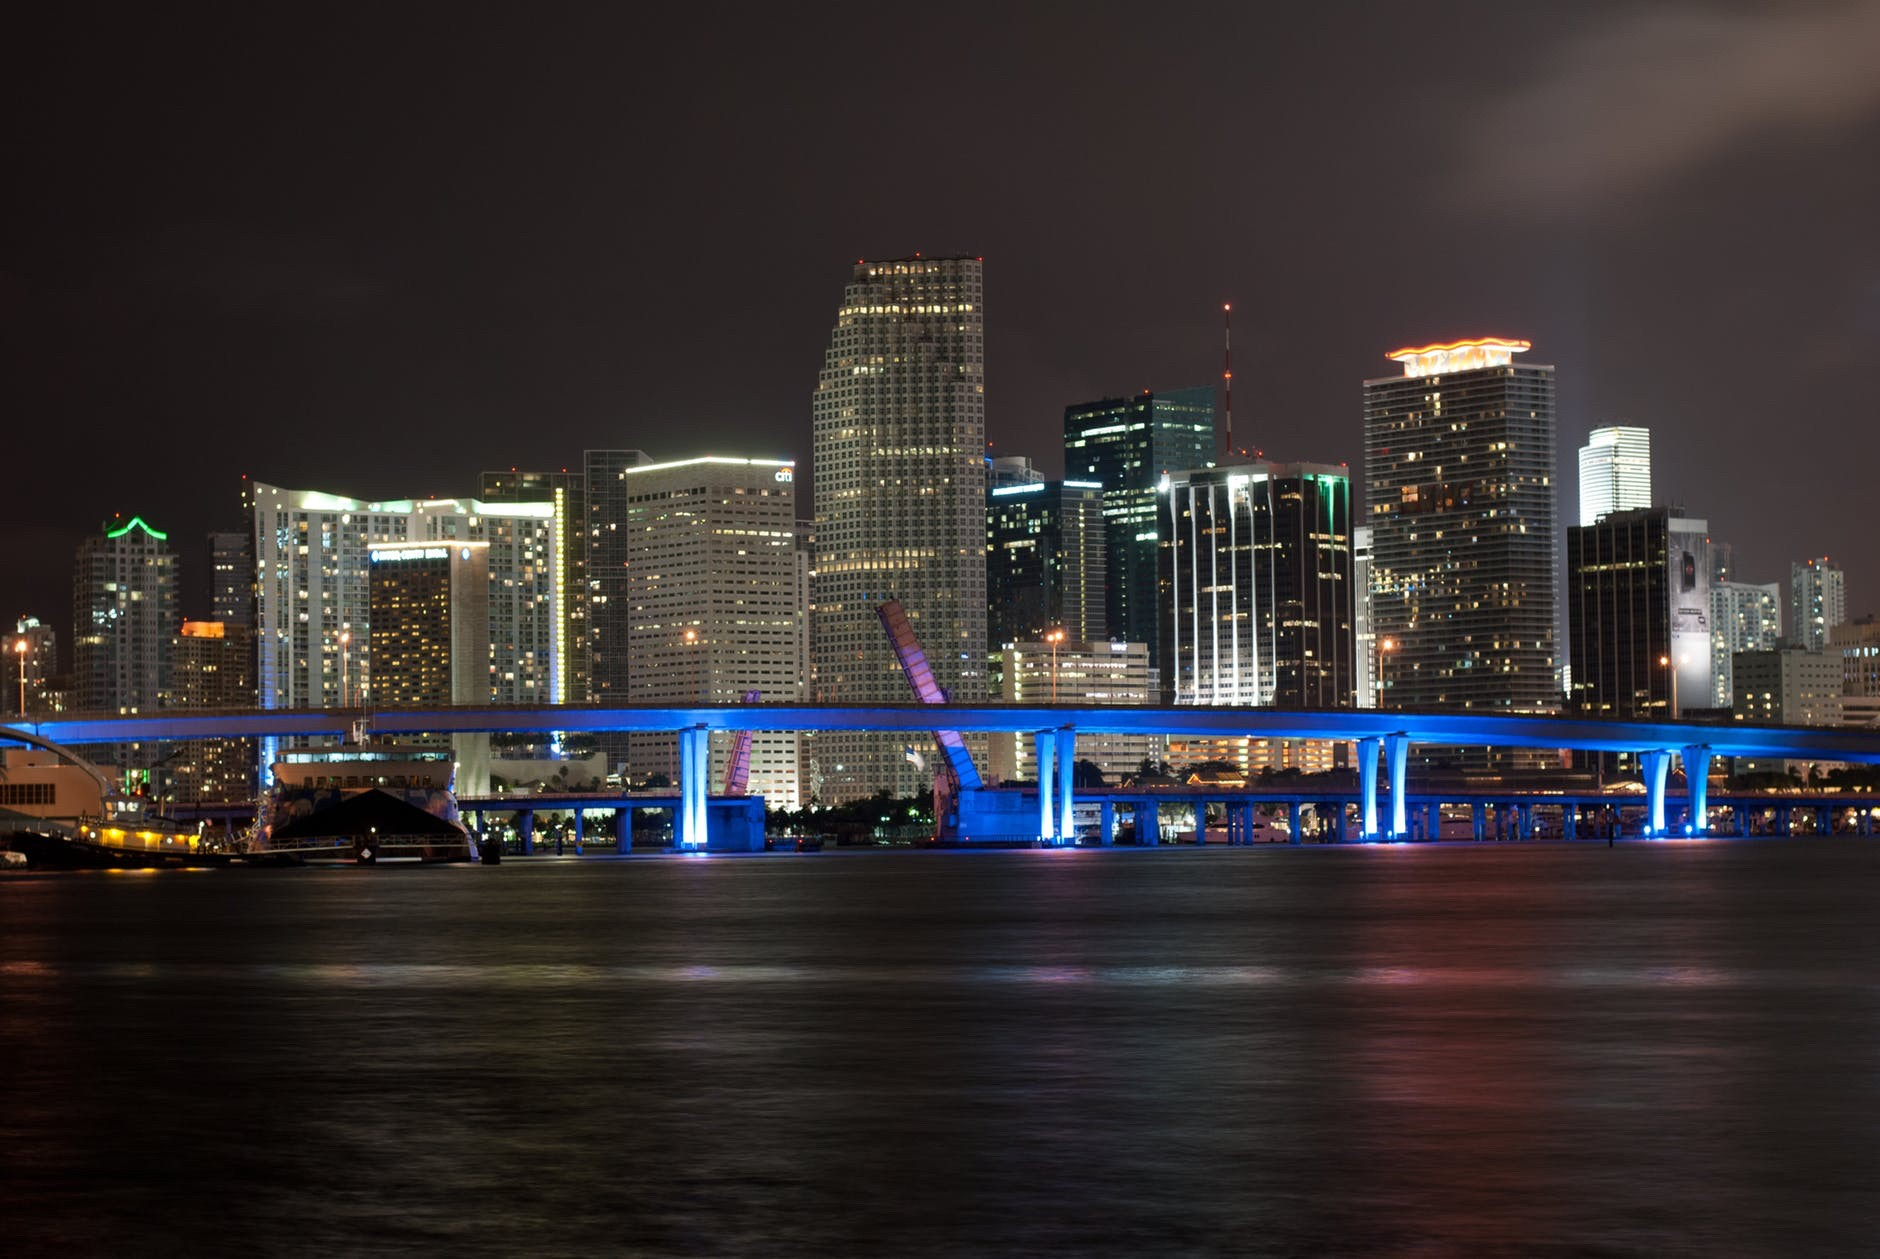 Flight Deal Round Trip From Chicago Area to Miami Area #chicago #miami #1week